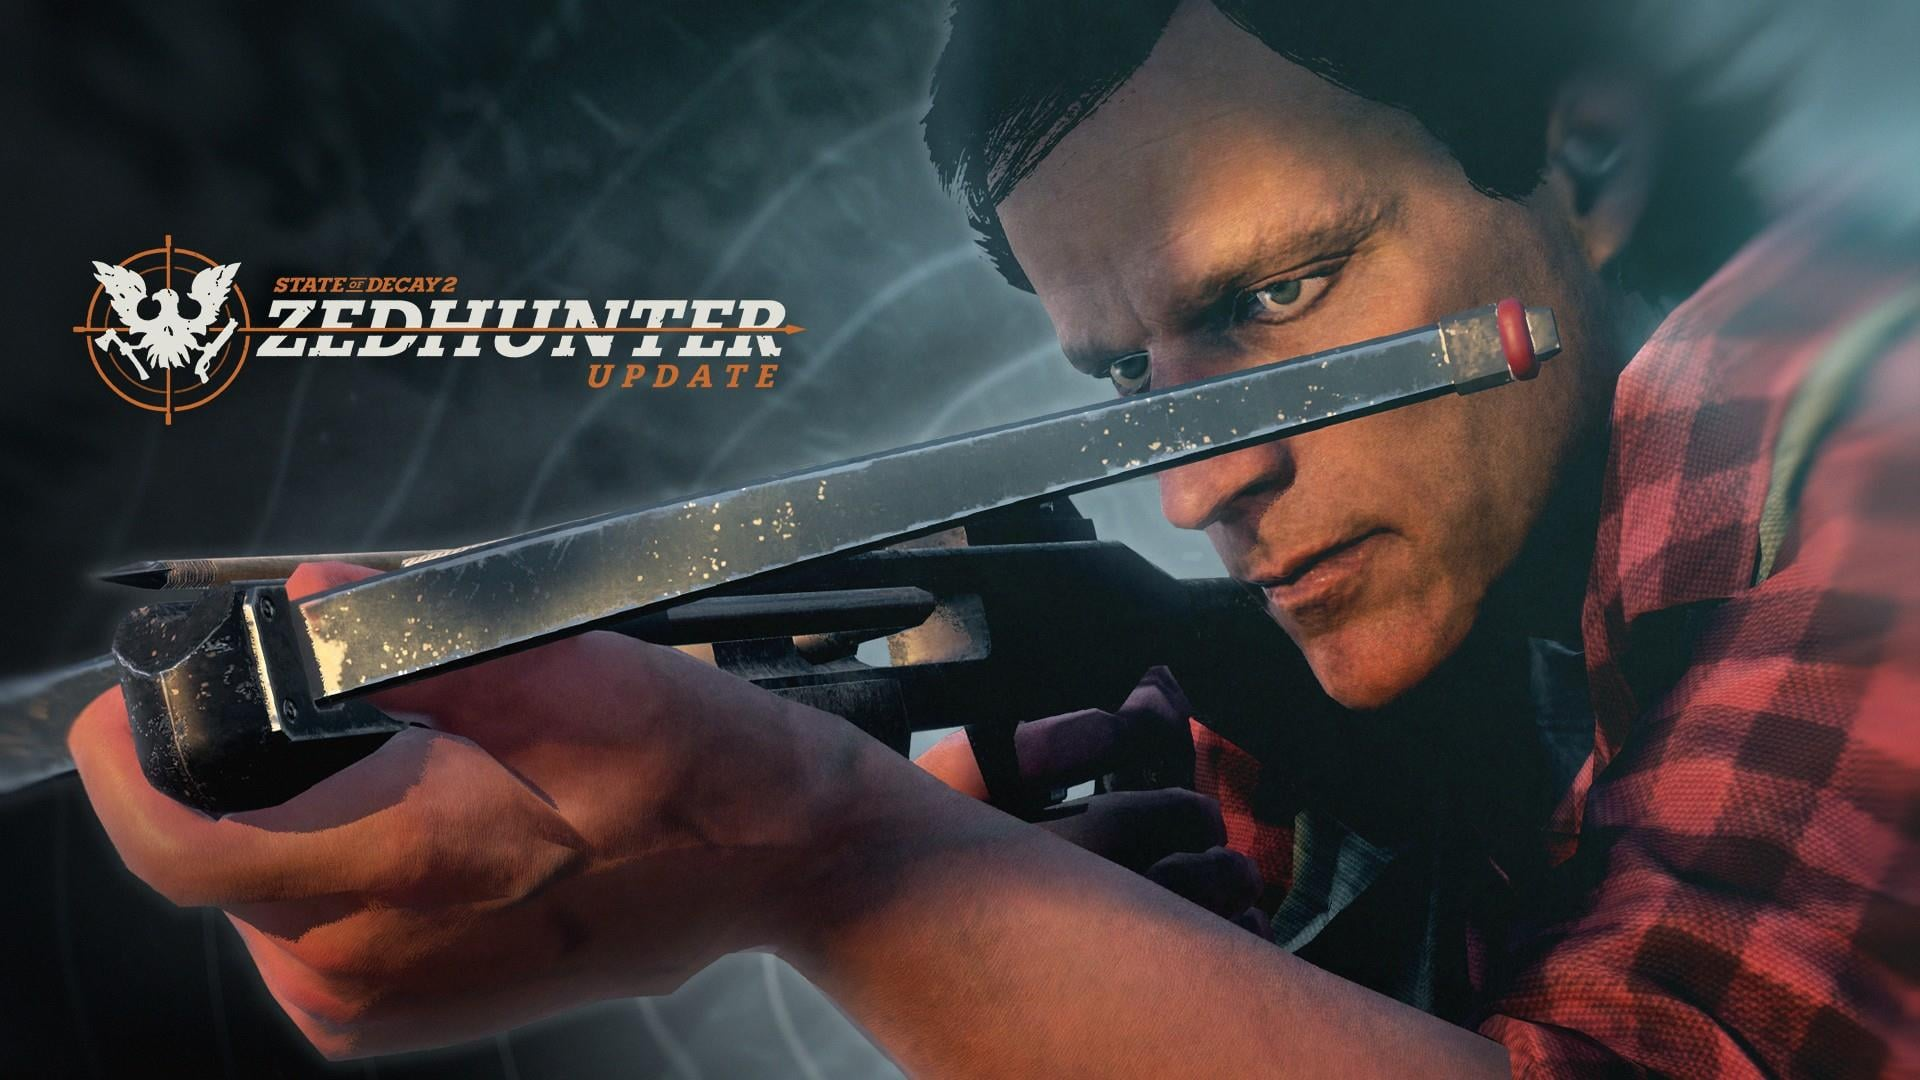 State of Decay 2 Zedhunter Update Ready To Slay Zombies